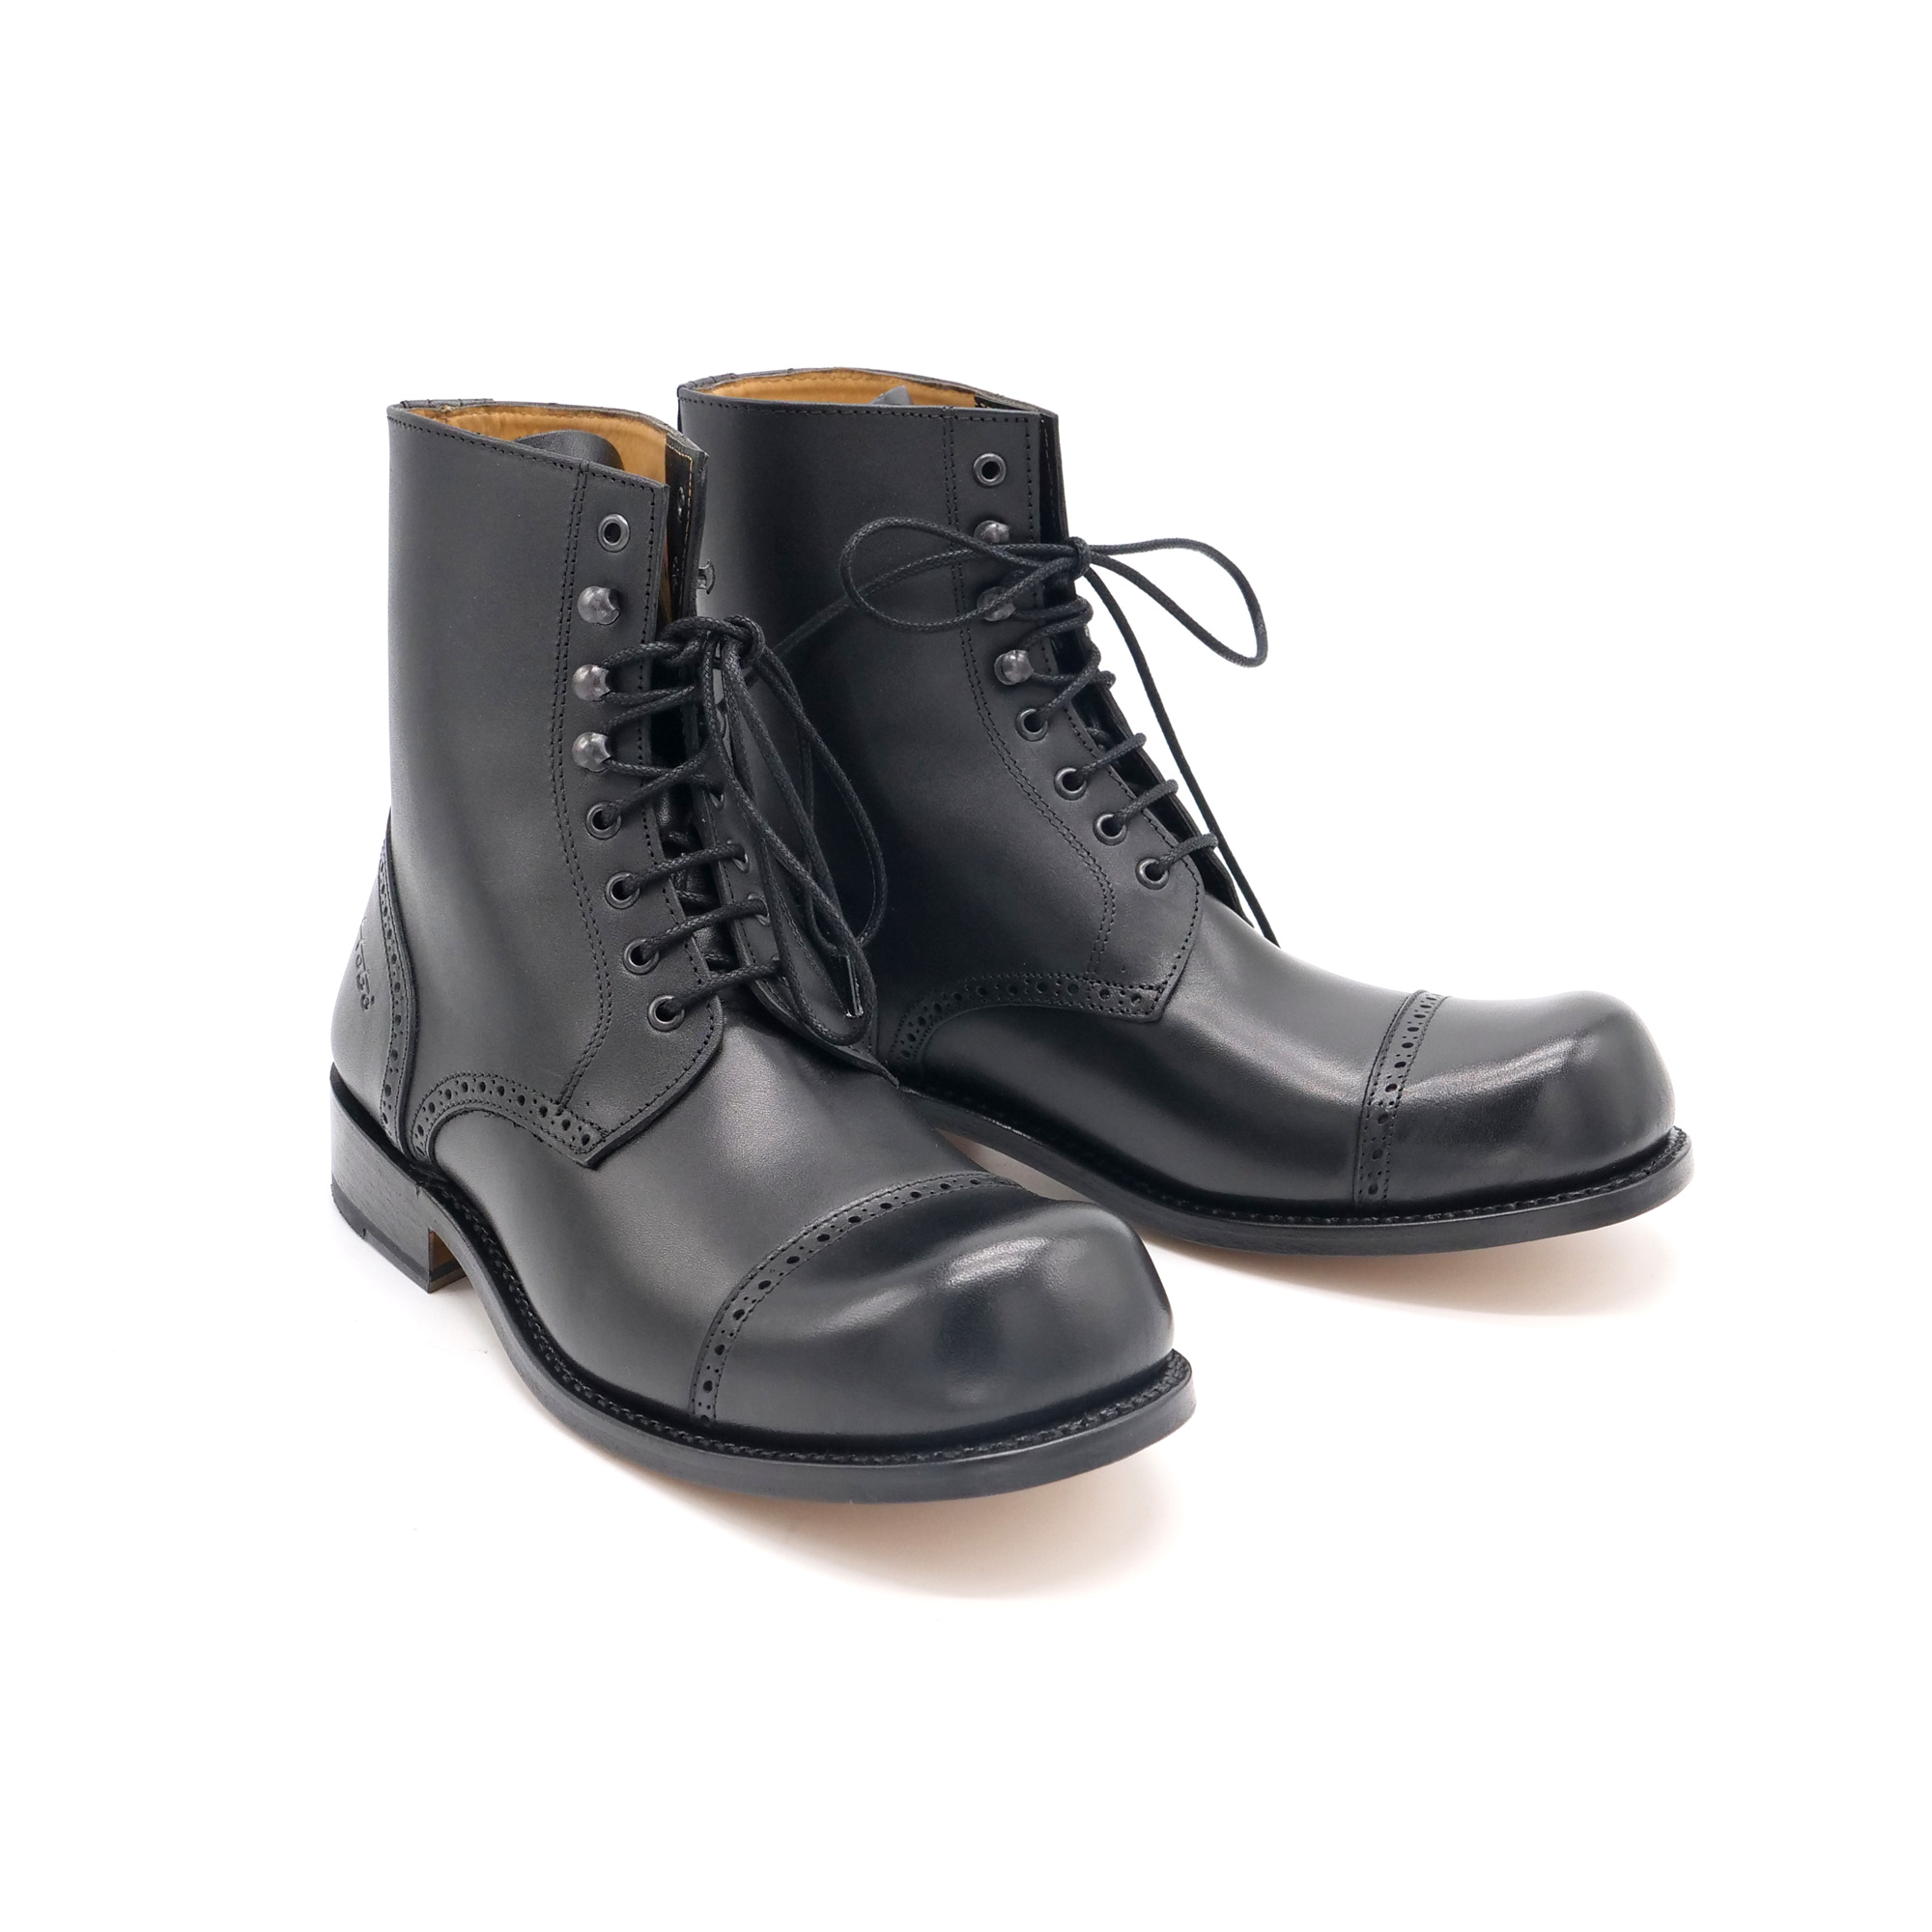 Hobo Charly Derby leather sole black